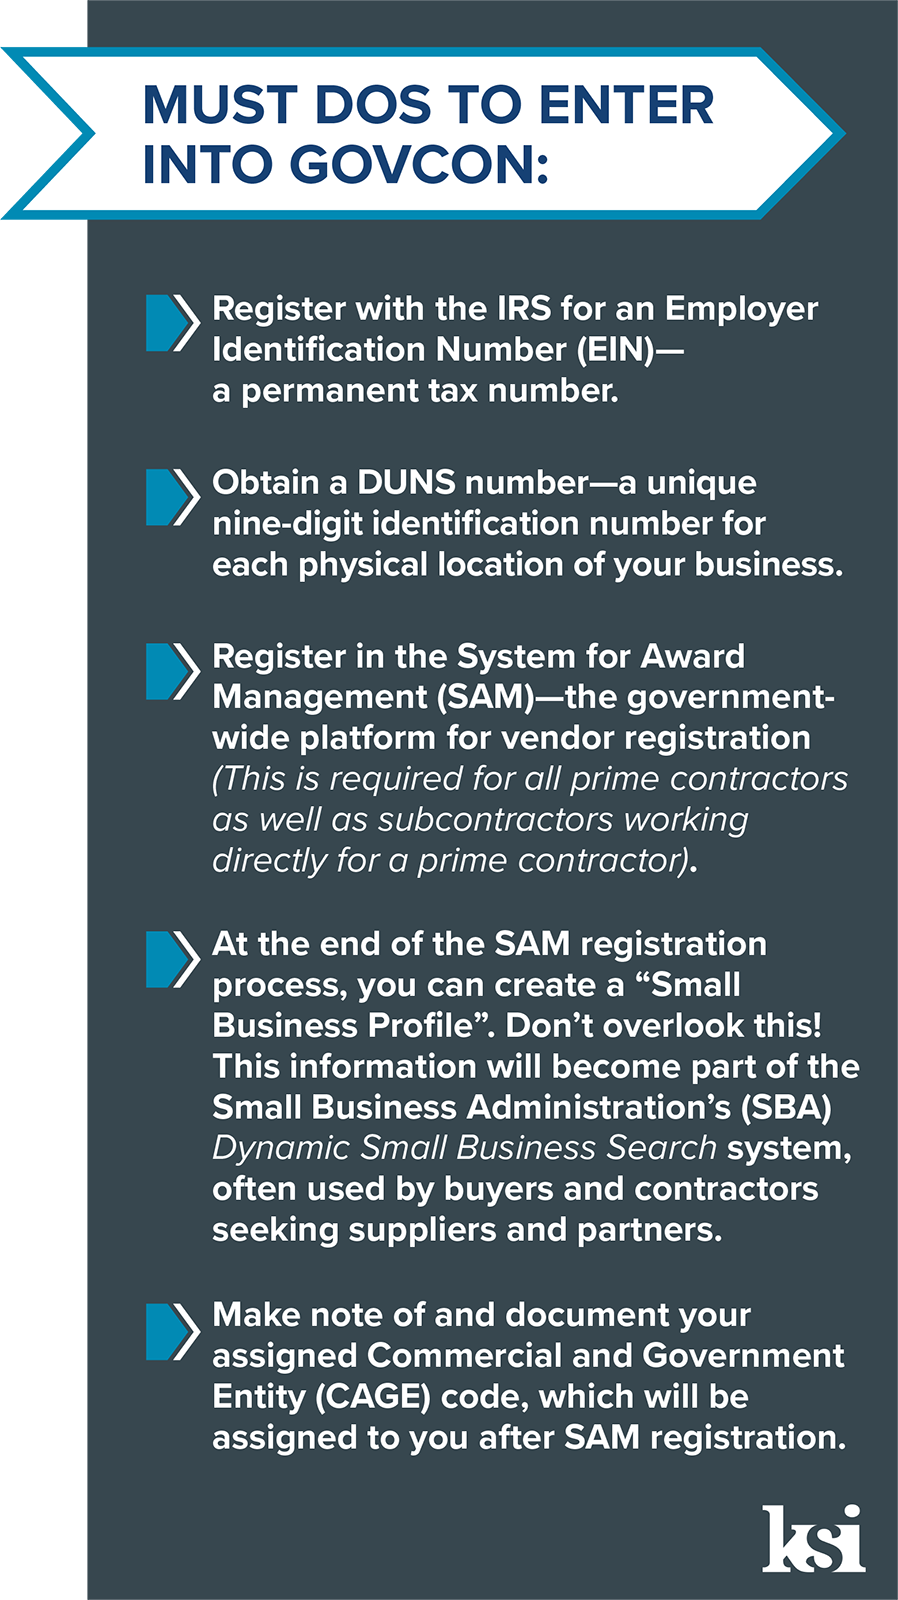 A list of GovCon Must Dos